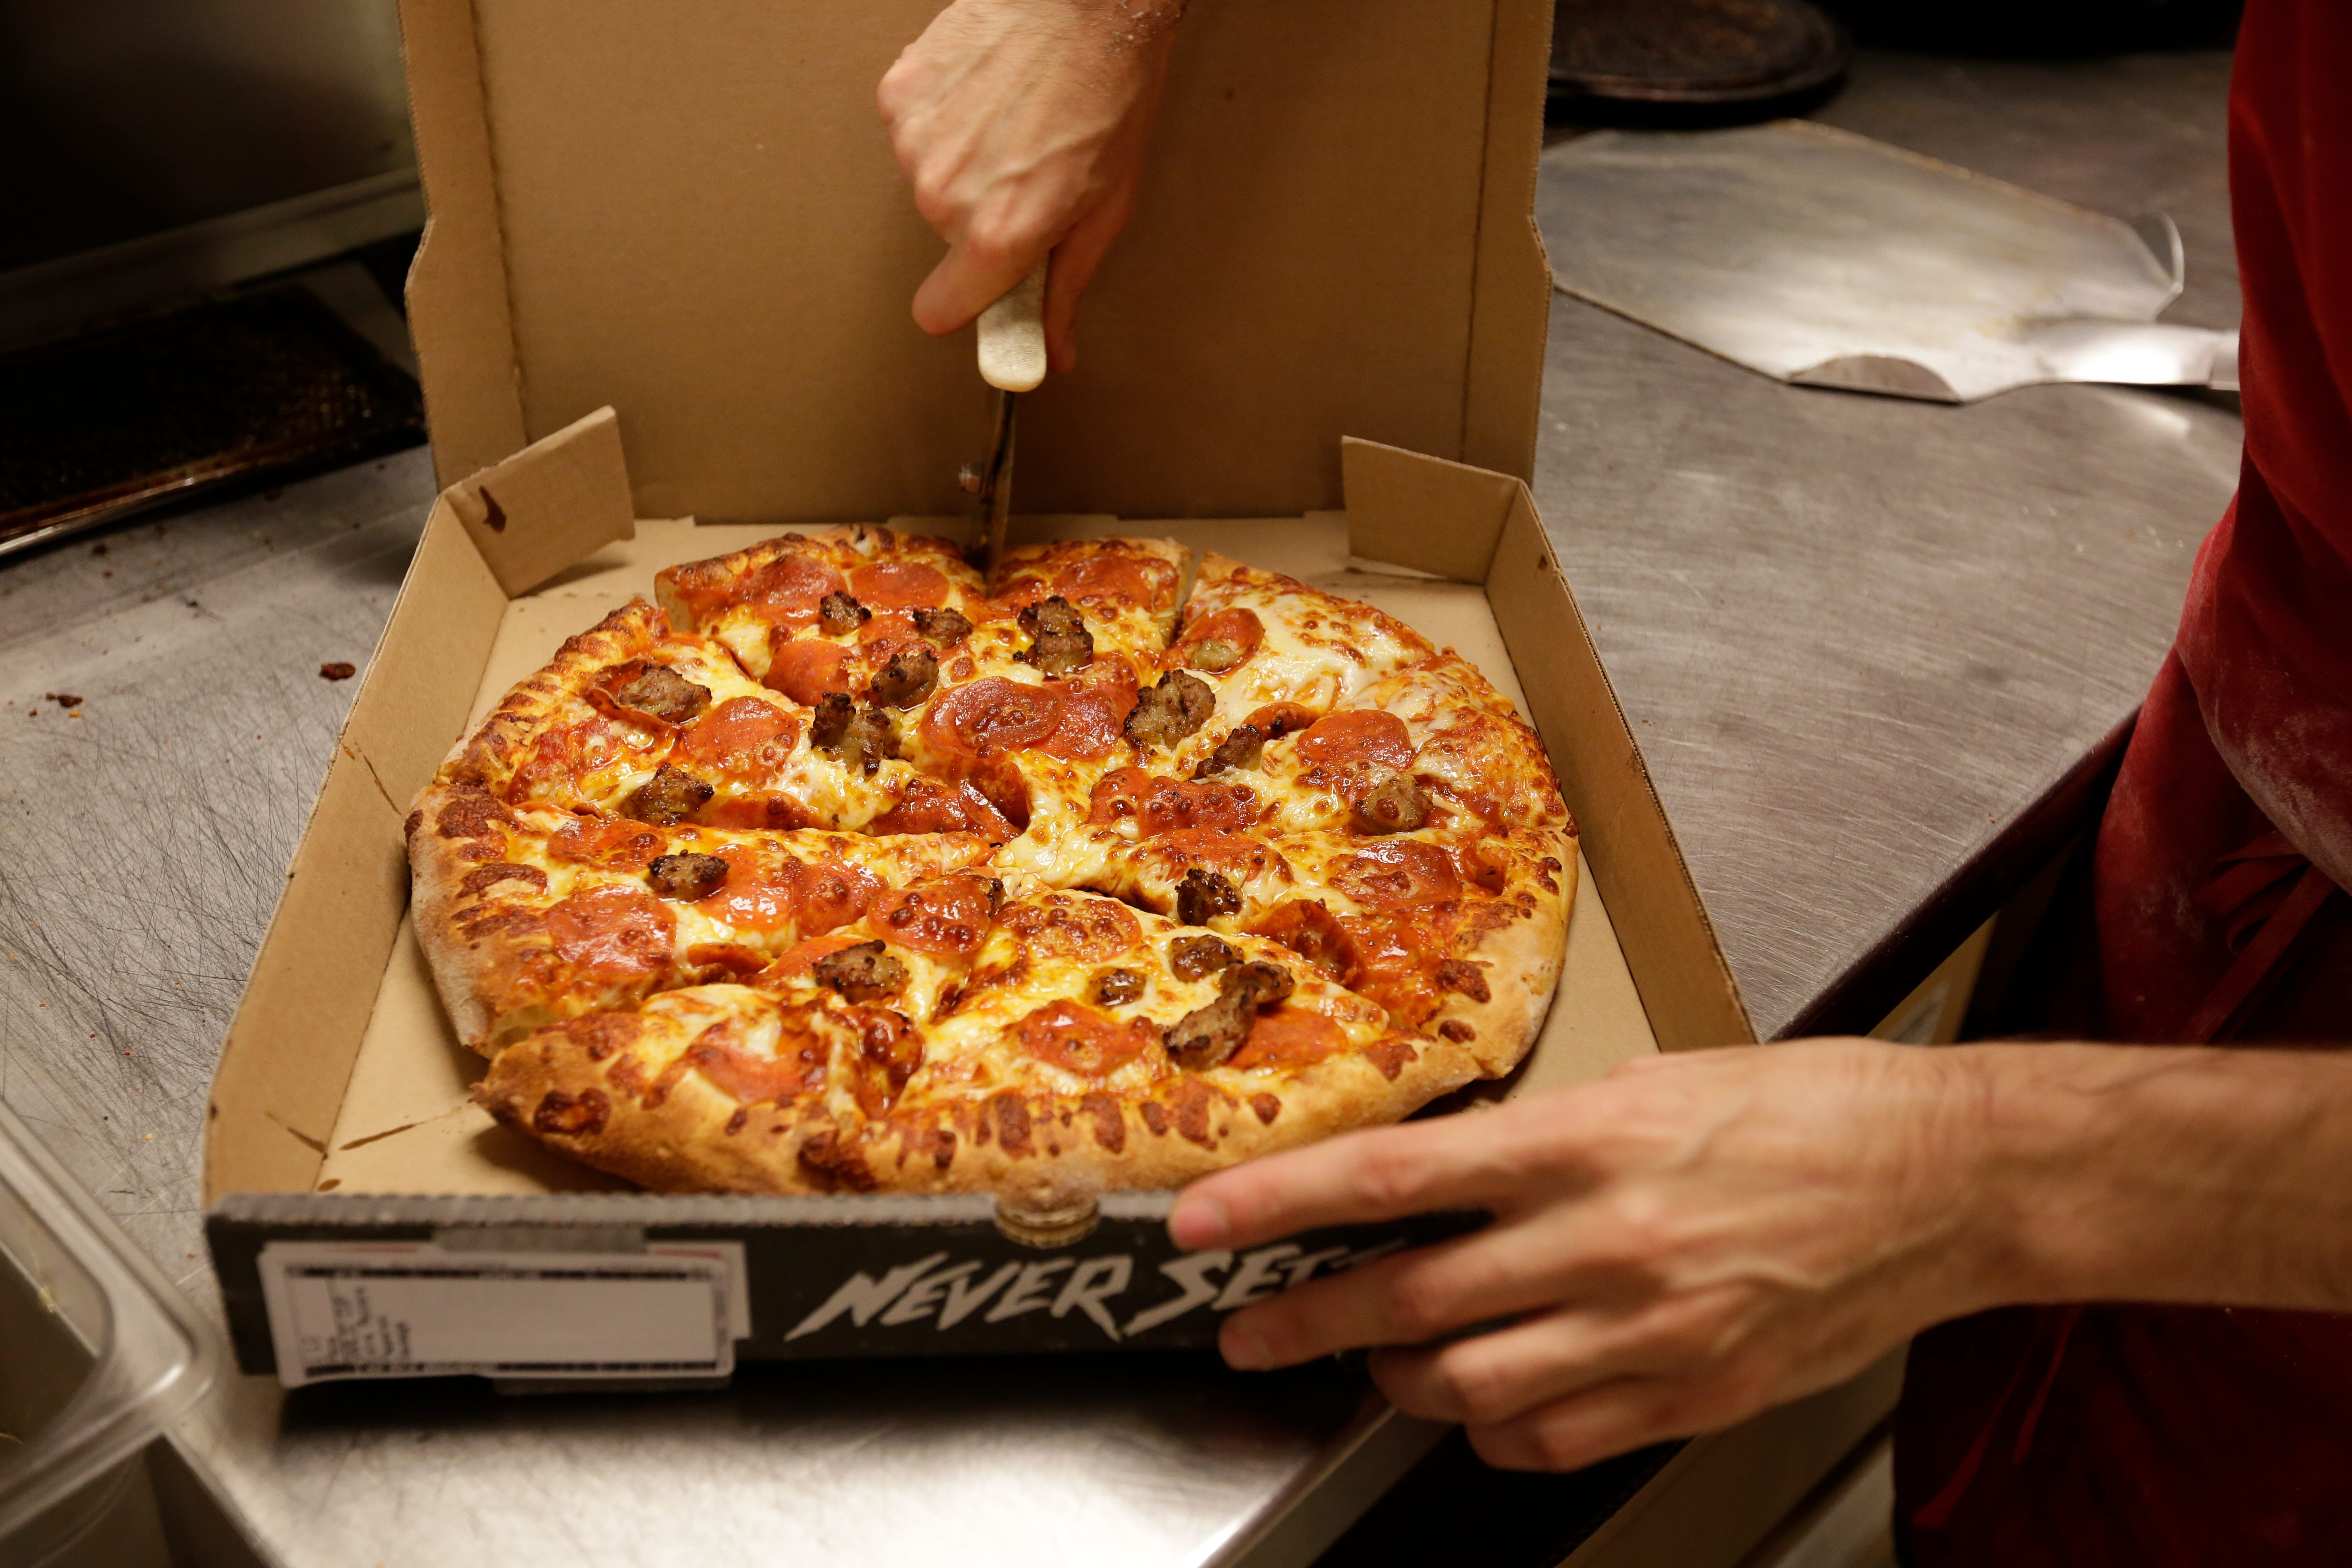 image regarding Toppers Pizza Place Printable Coupons named Toppers pizza wisconsin : Outhouse orchards